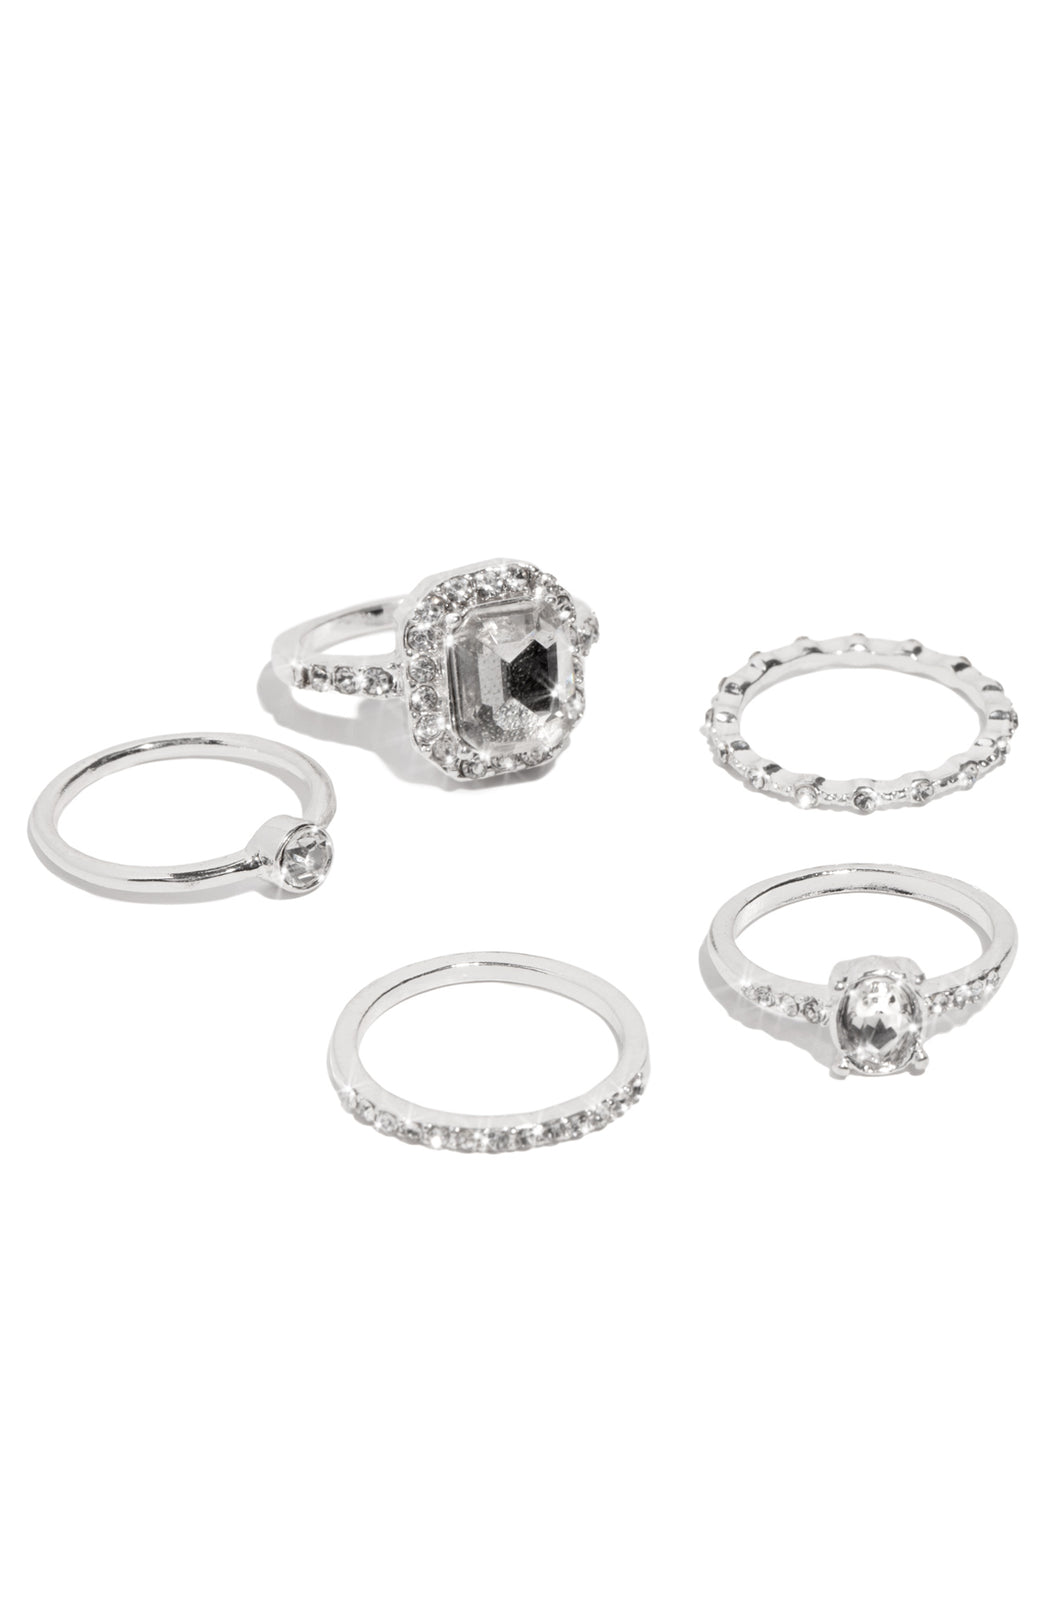 Divinity Ring Set - Silver